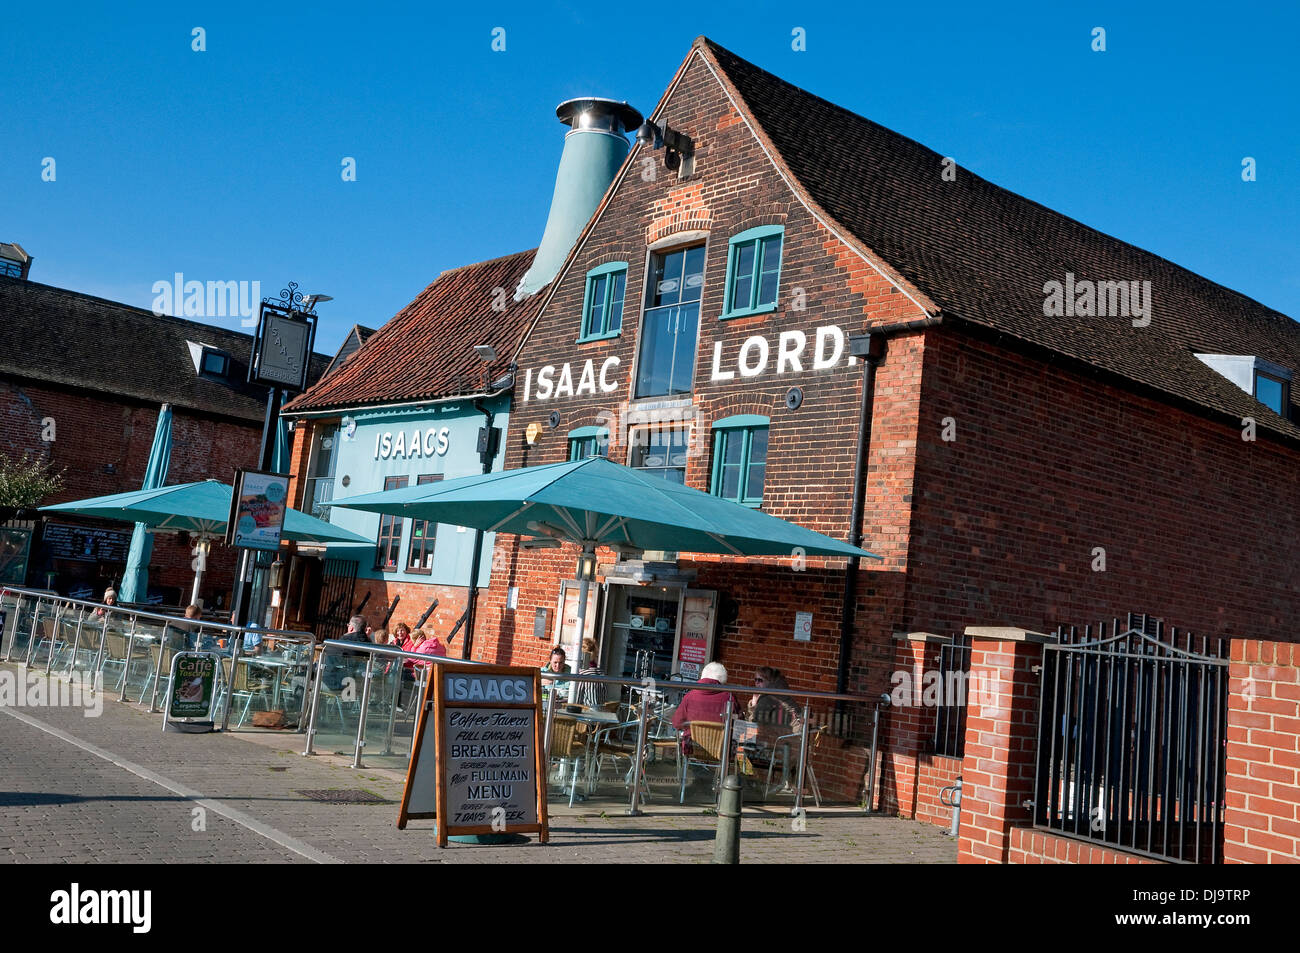 isaac lord public house restaurant cafe, ipswich, suffolk, england - Stock Image